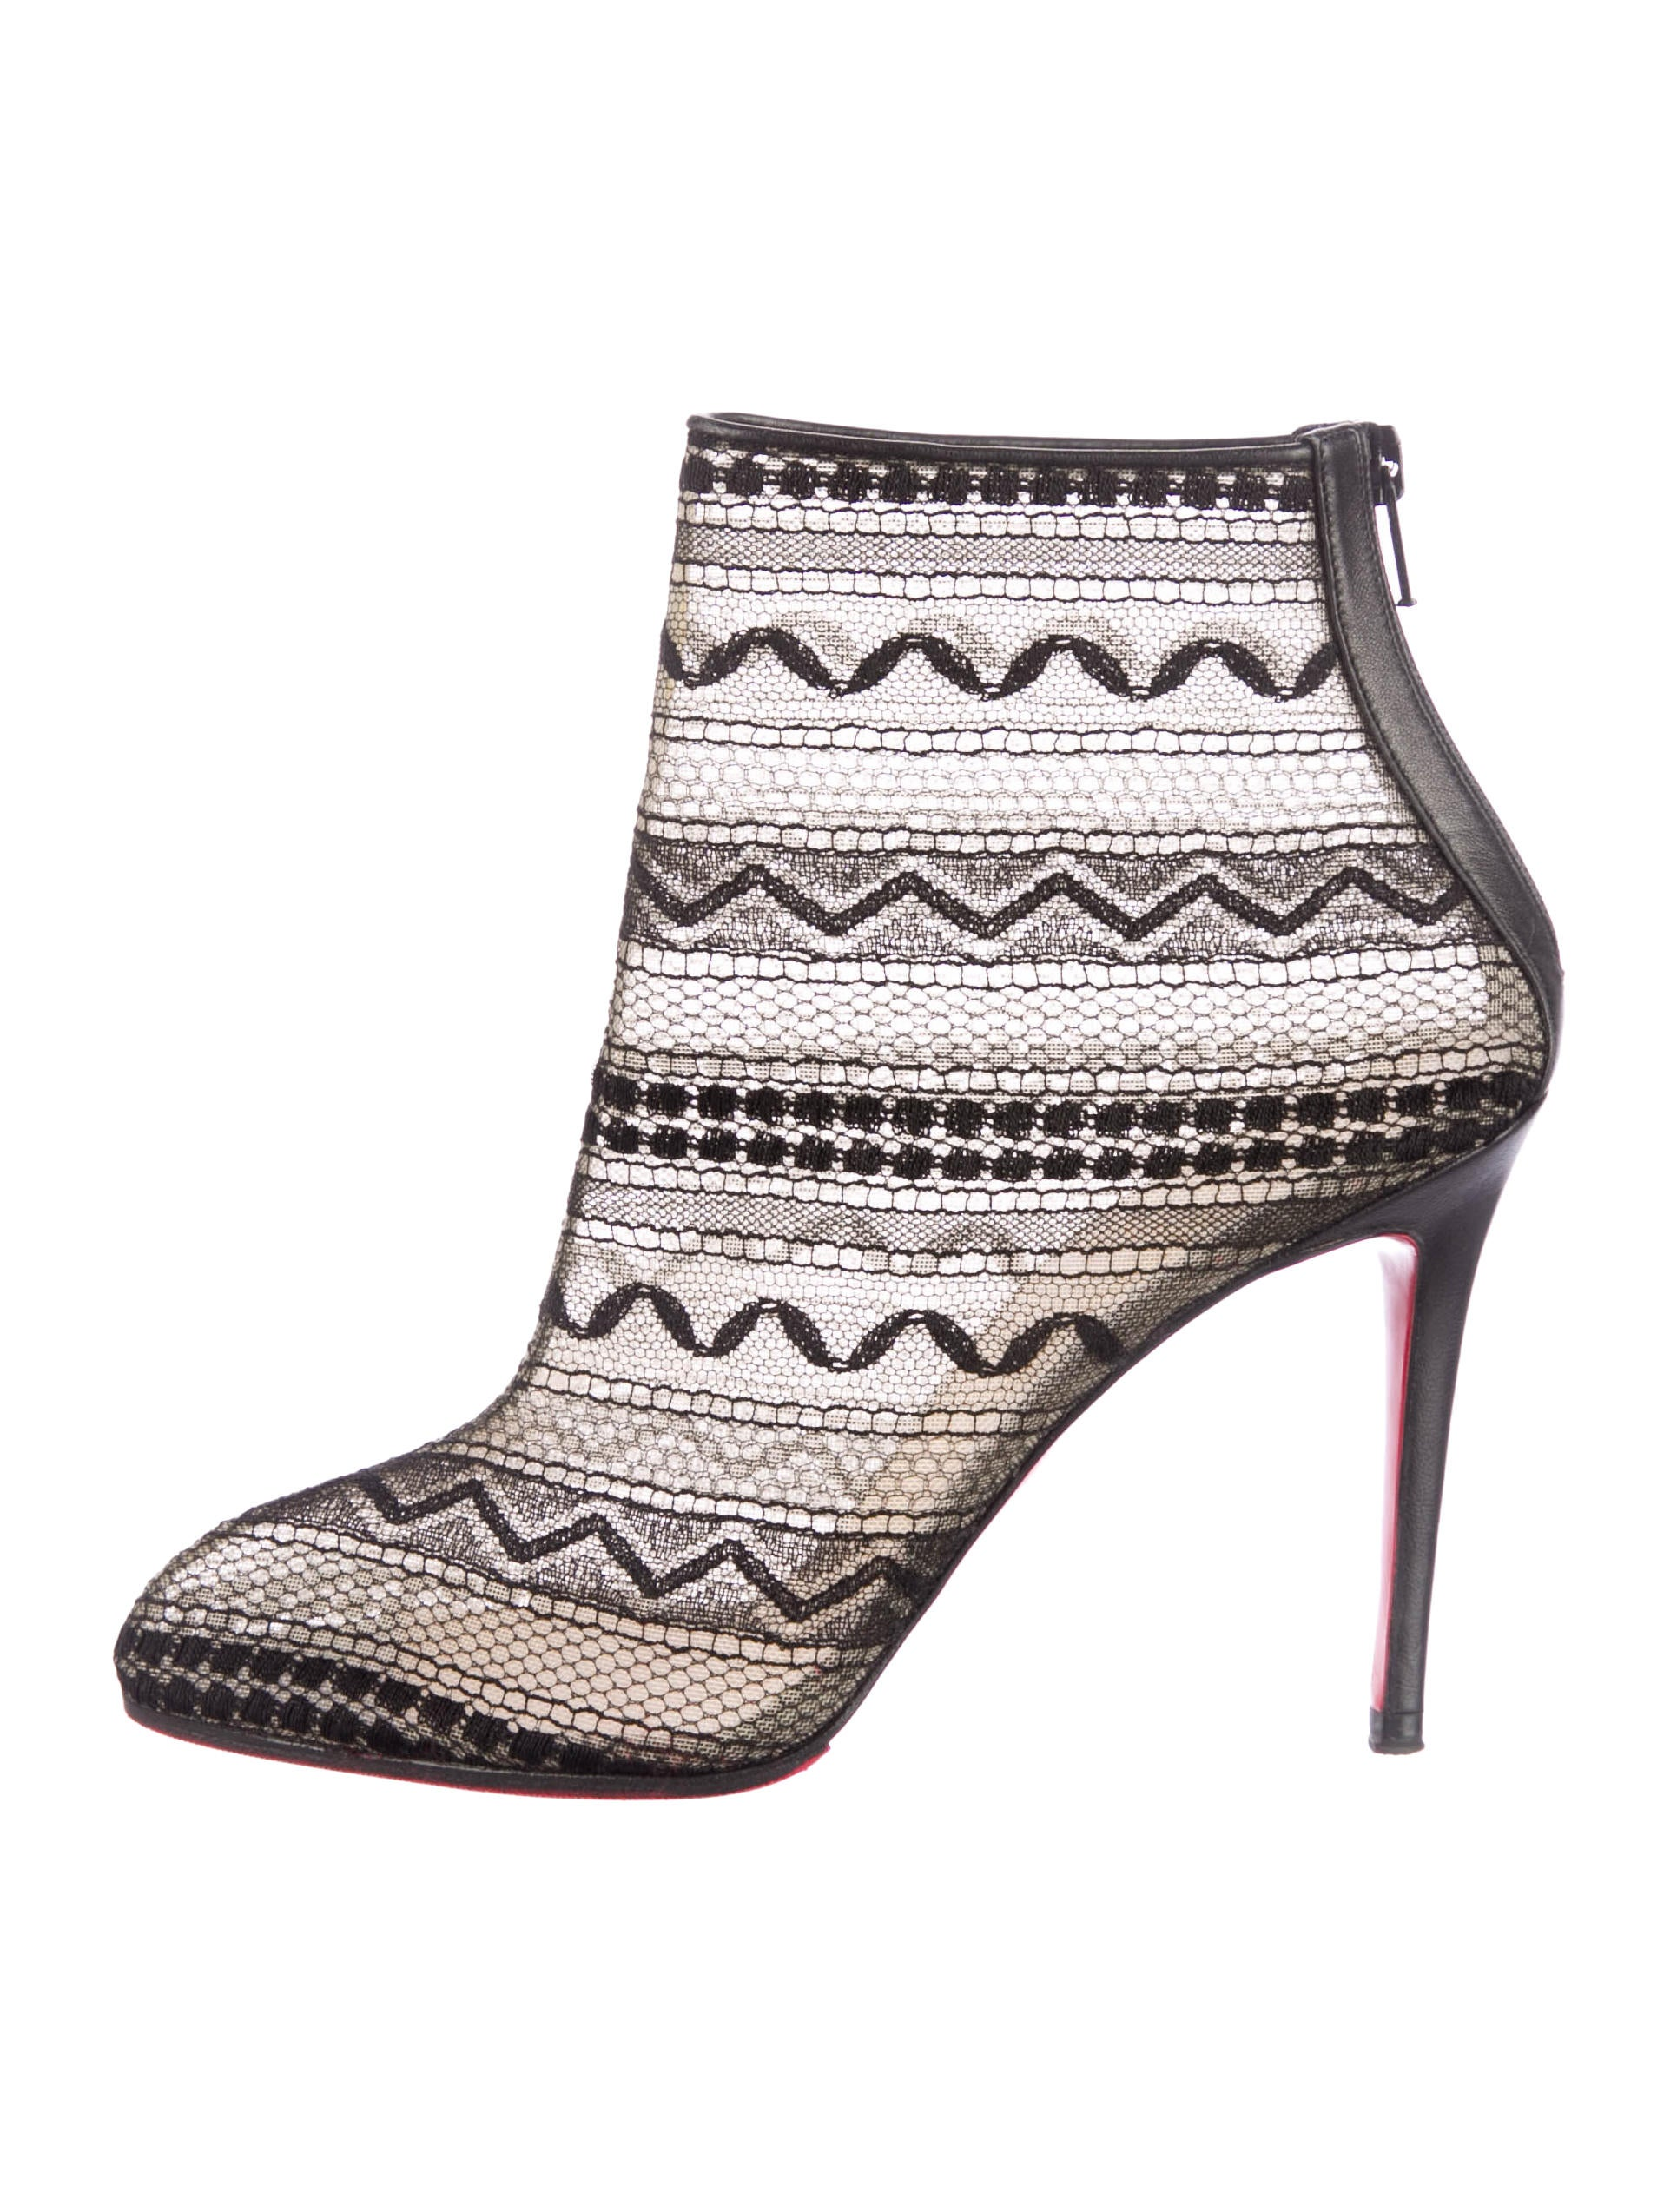 christian louboutin Paola Booty mesh ankle boots | The Little Arts ...